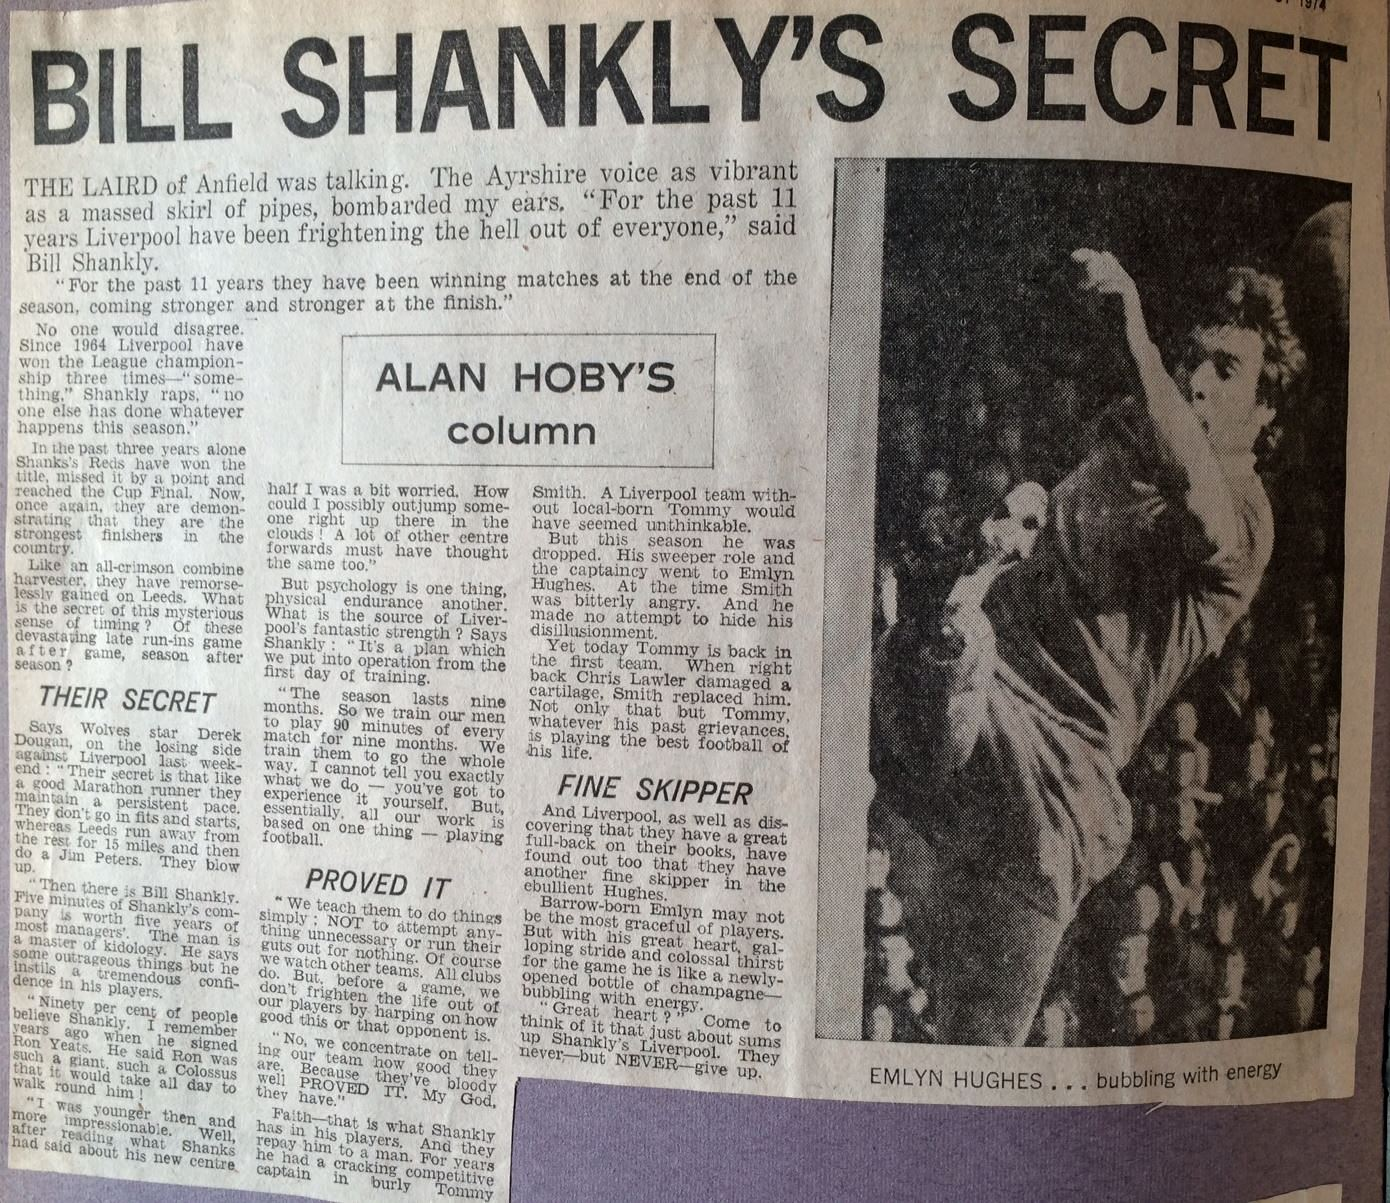 Shankly's Secret - 31 March 1973